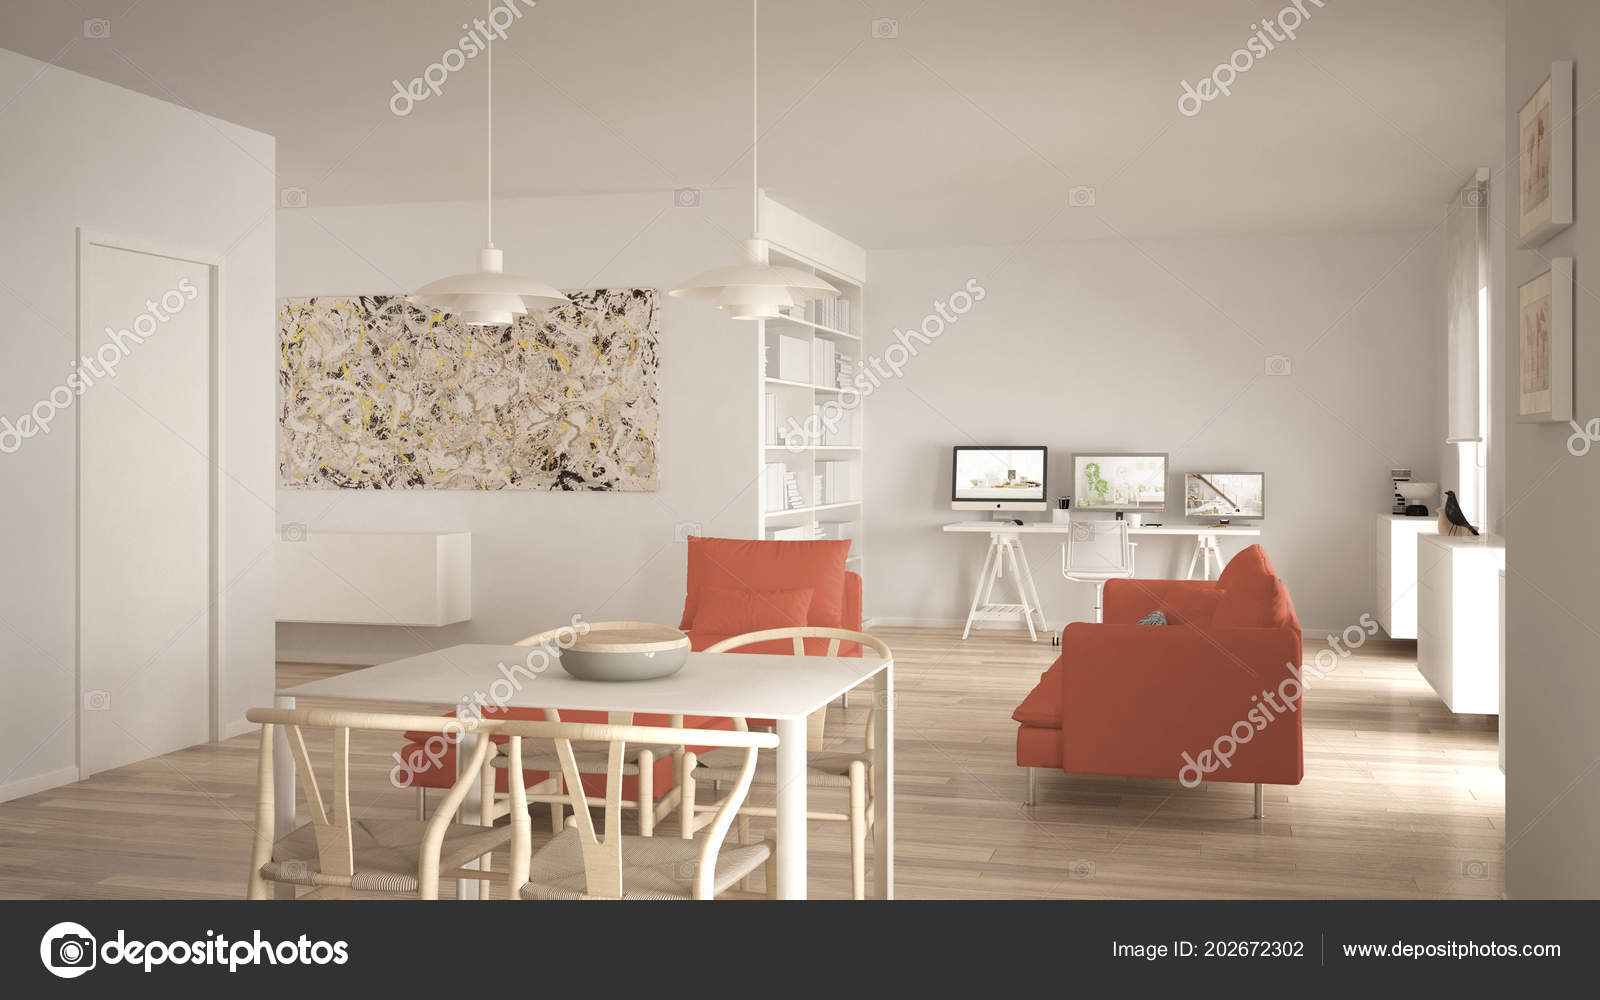 Minimalist Living Space Nordic Minimalist Living Room Open Space Dining Table Sofa Corner